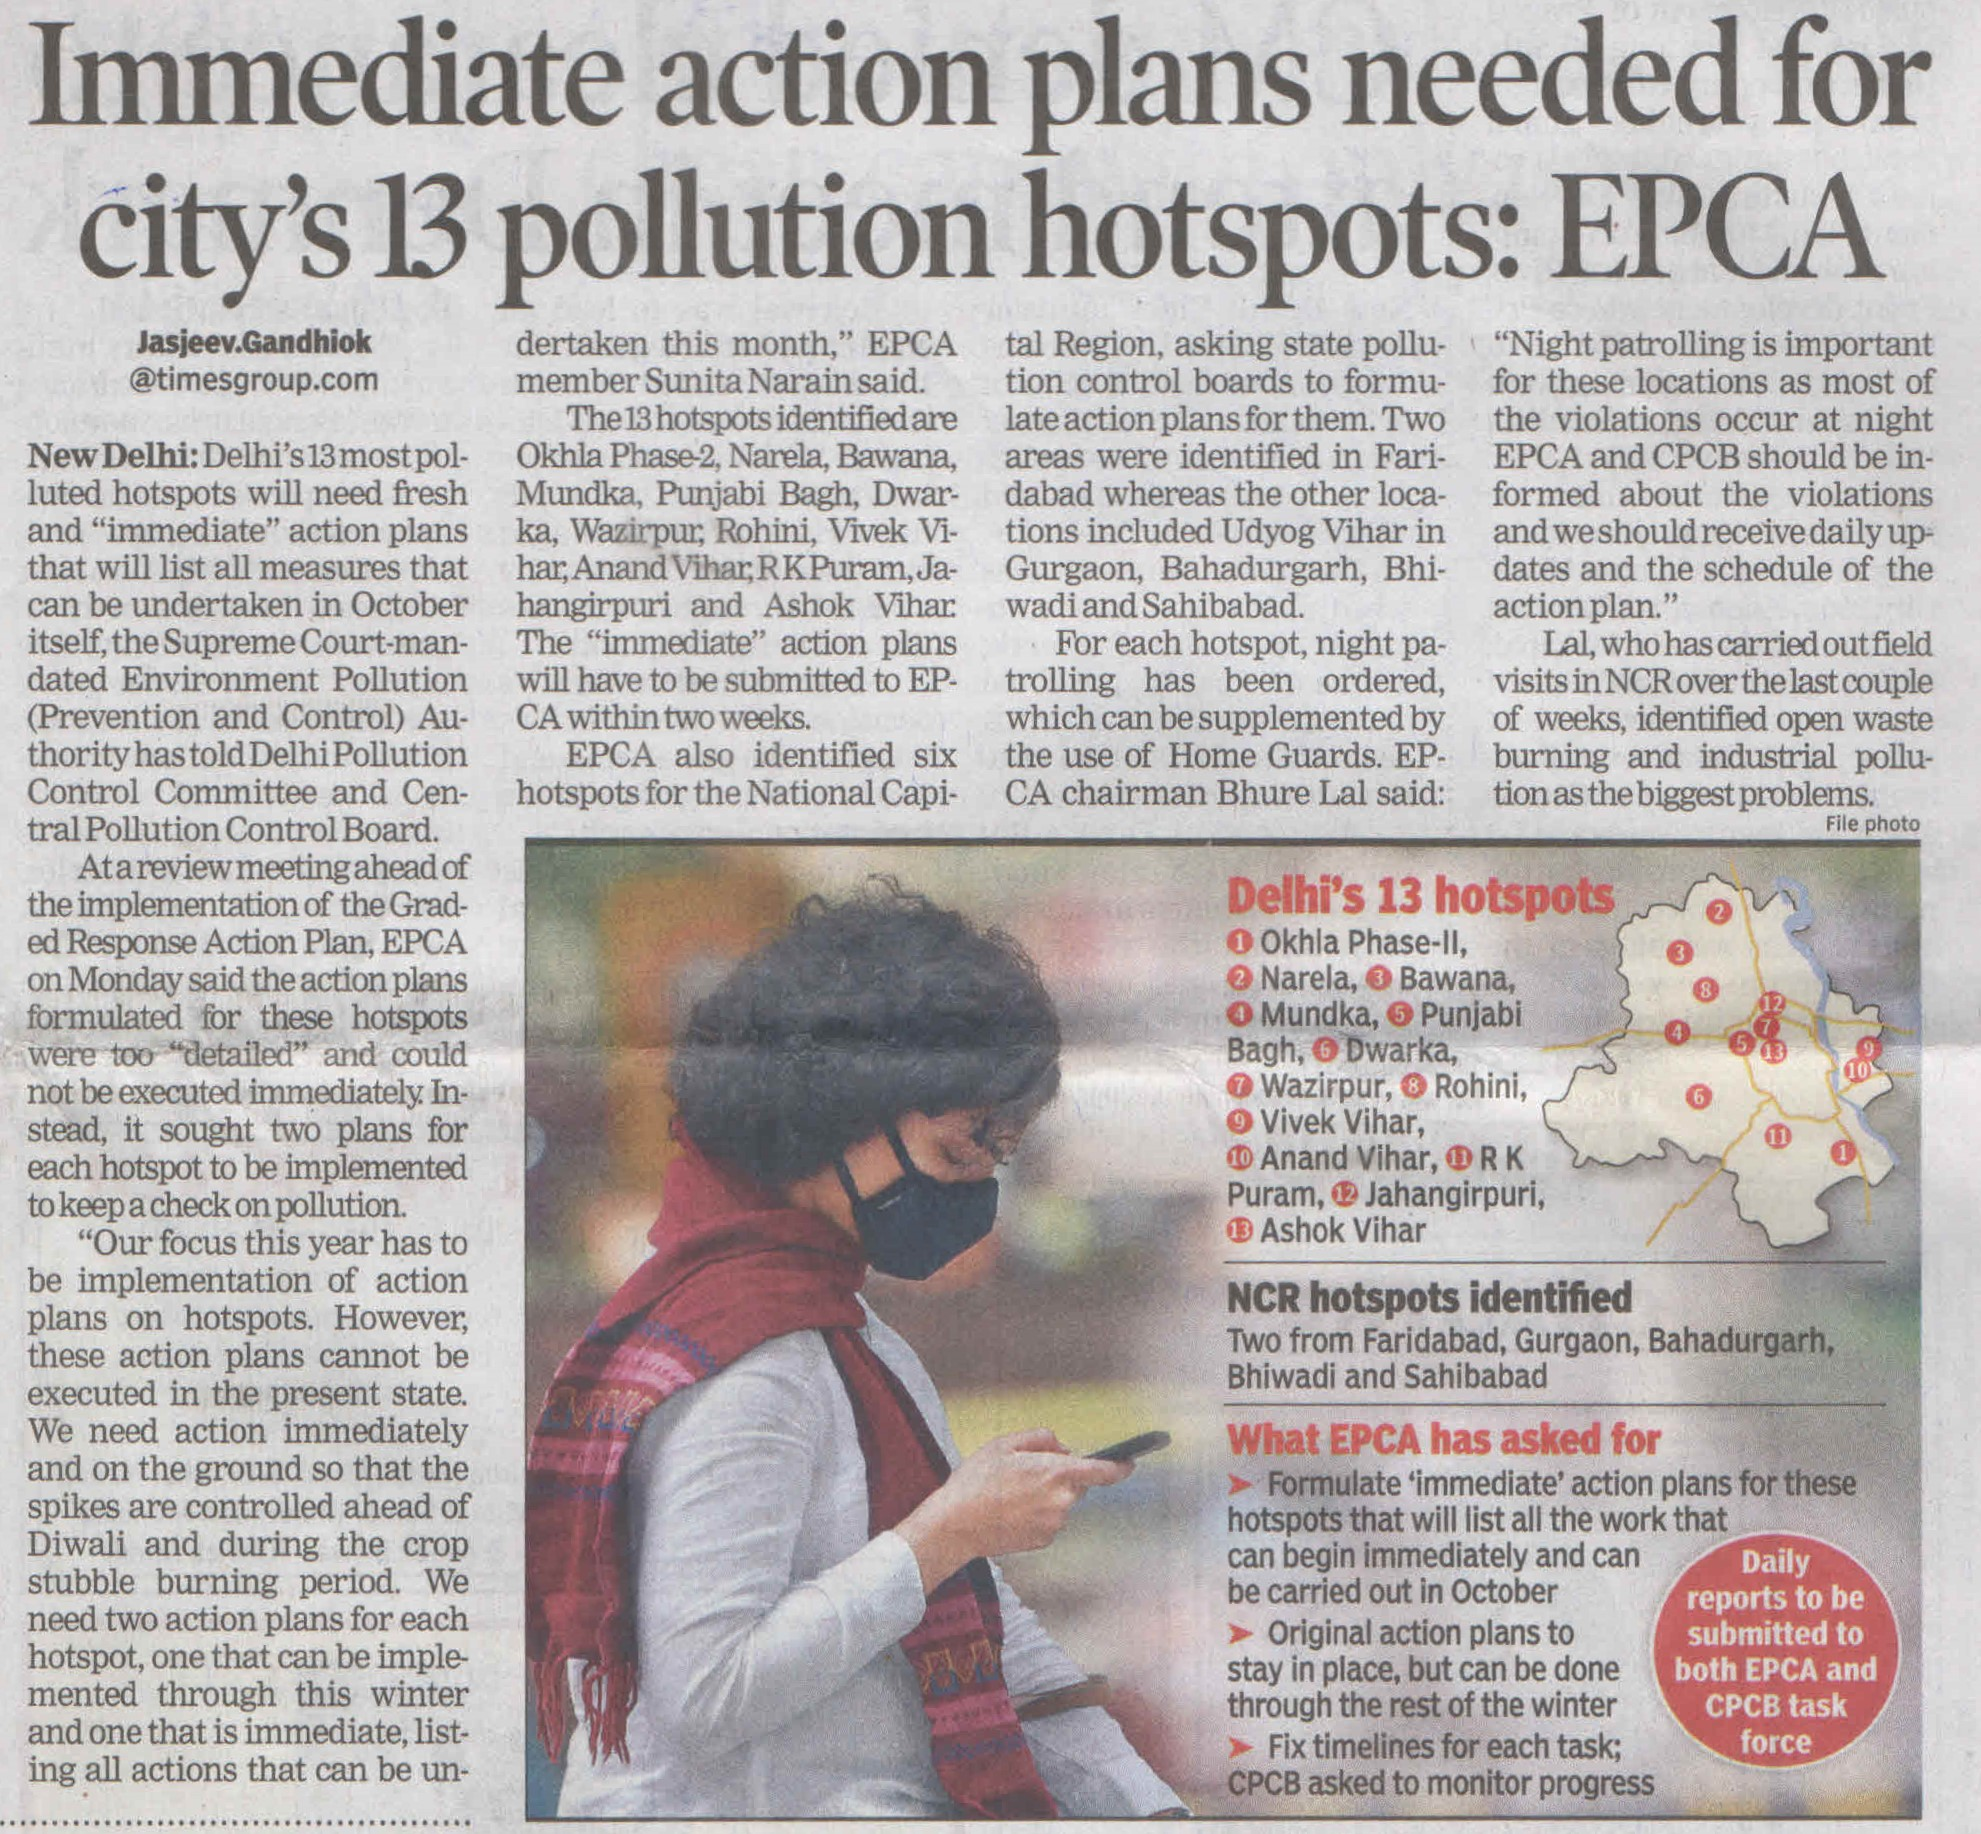 Immediate action plans needed for city's 13 pollution hotspots:EPCA